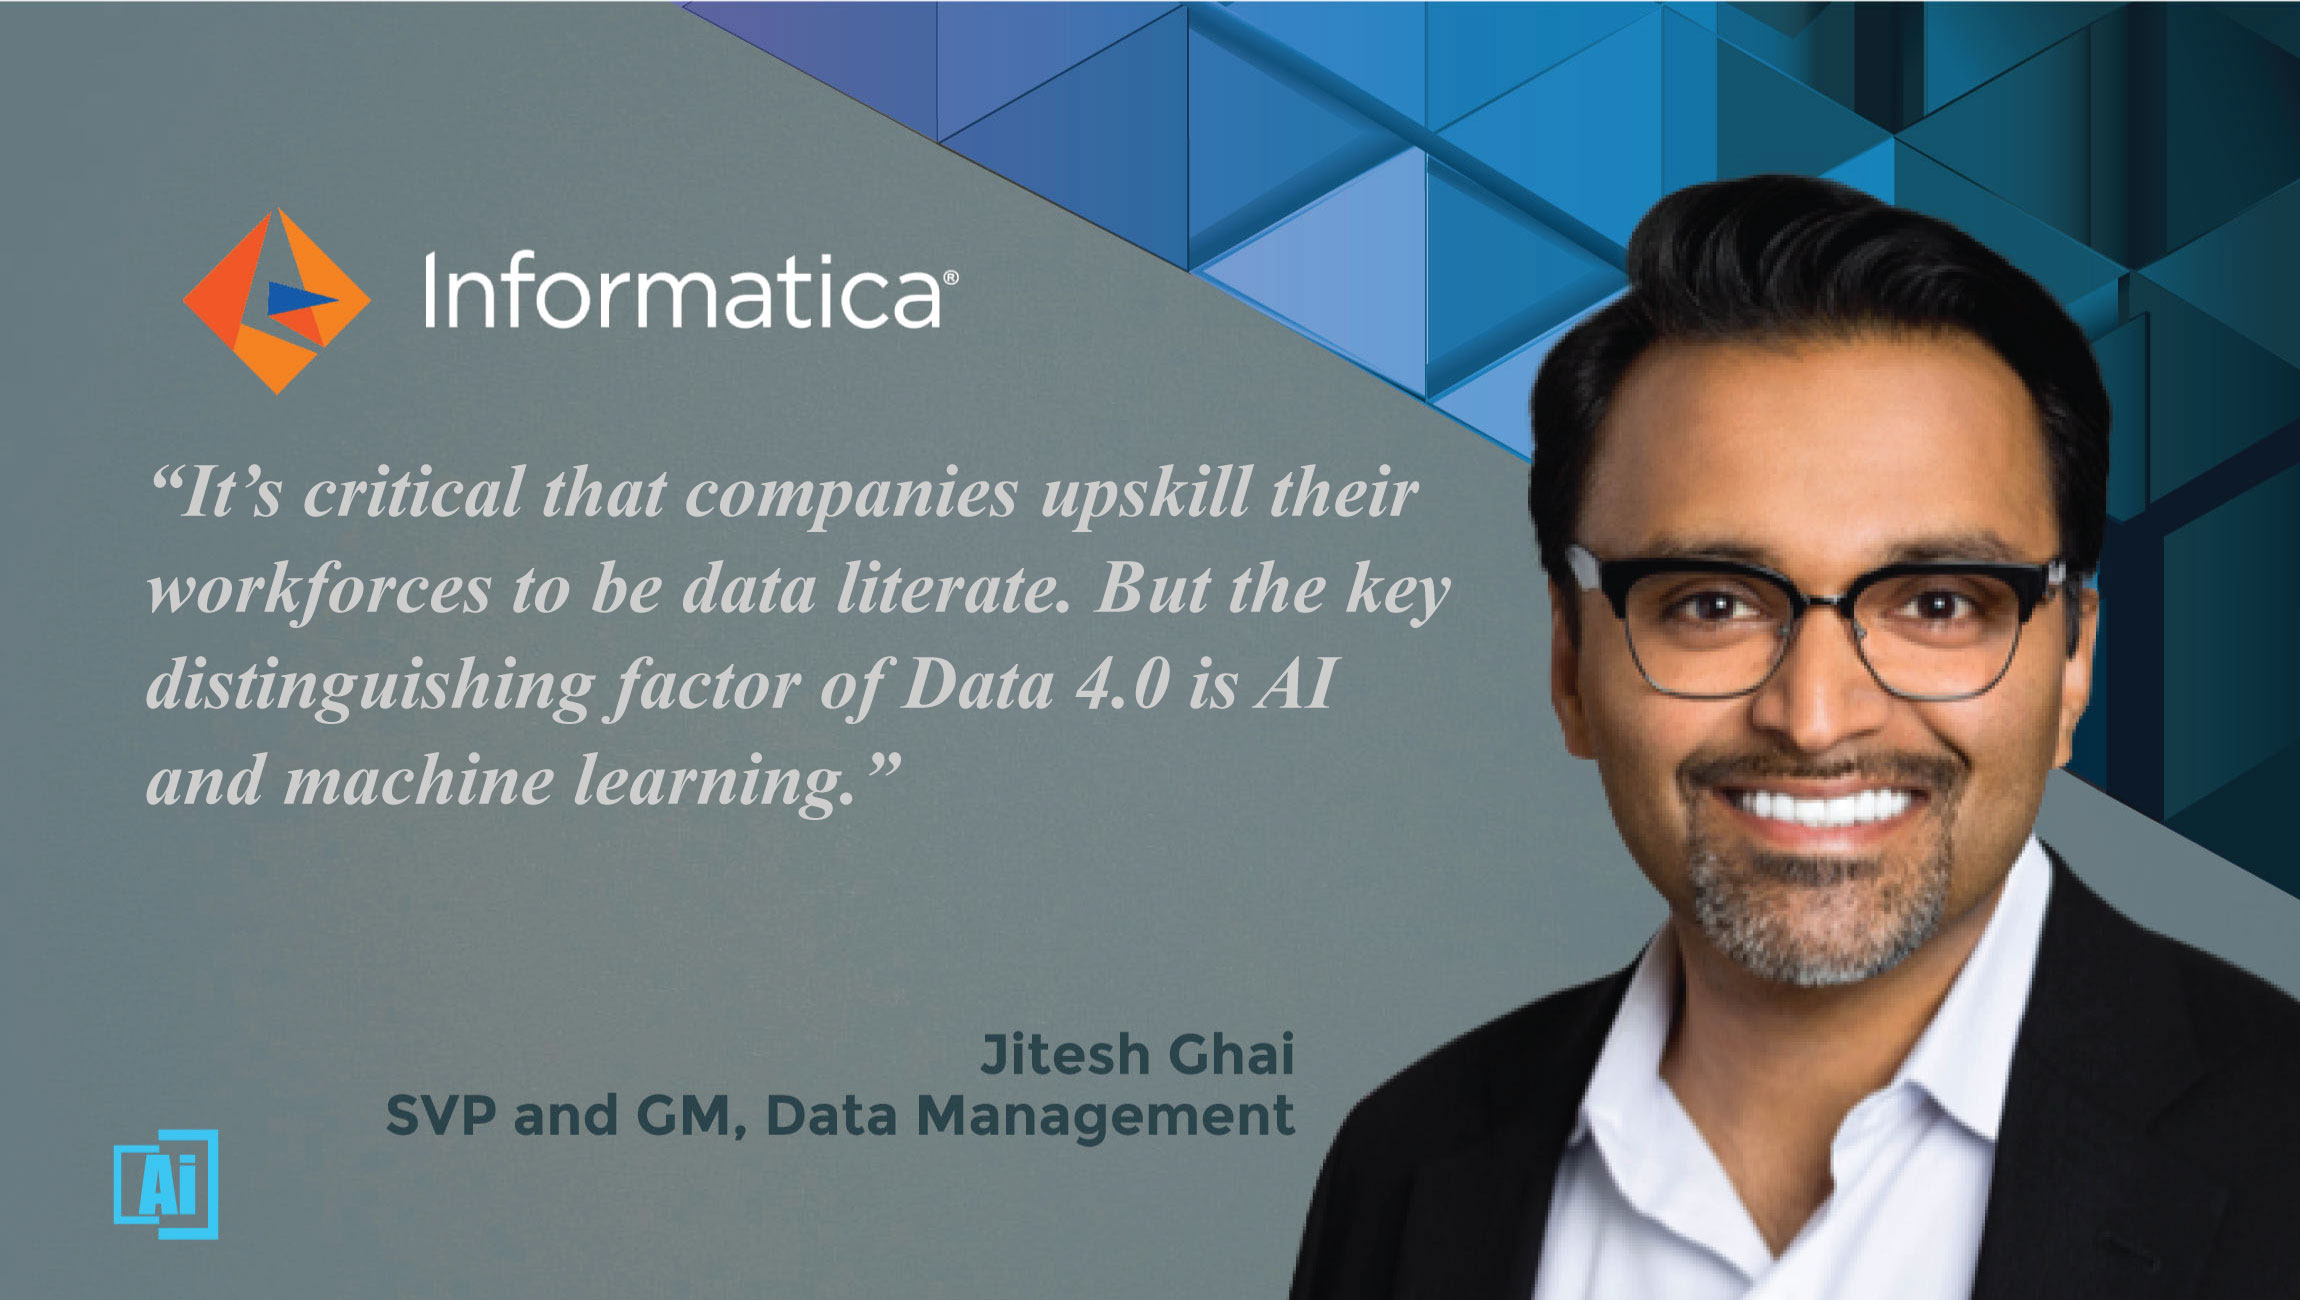 AiThority Interview With Jitesh Ghai, SVP and GM, Data Management at Informatica